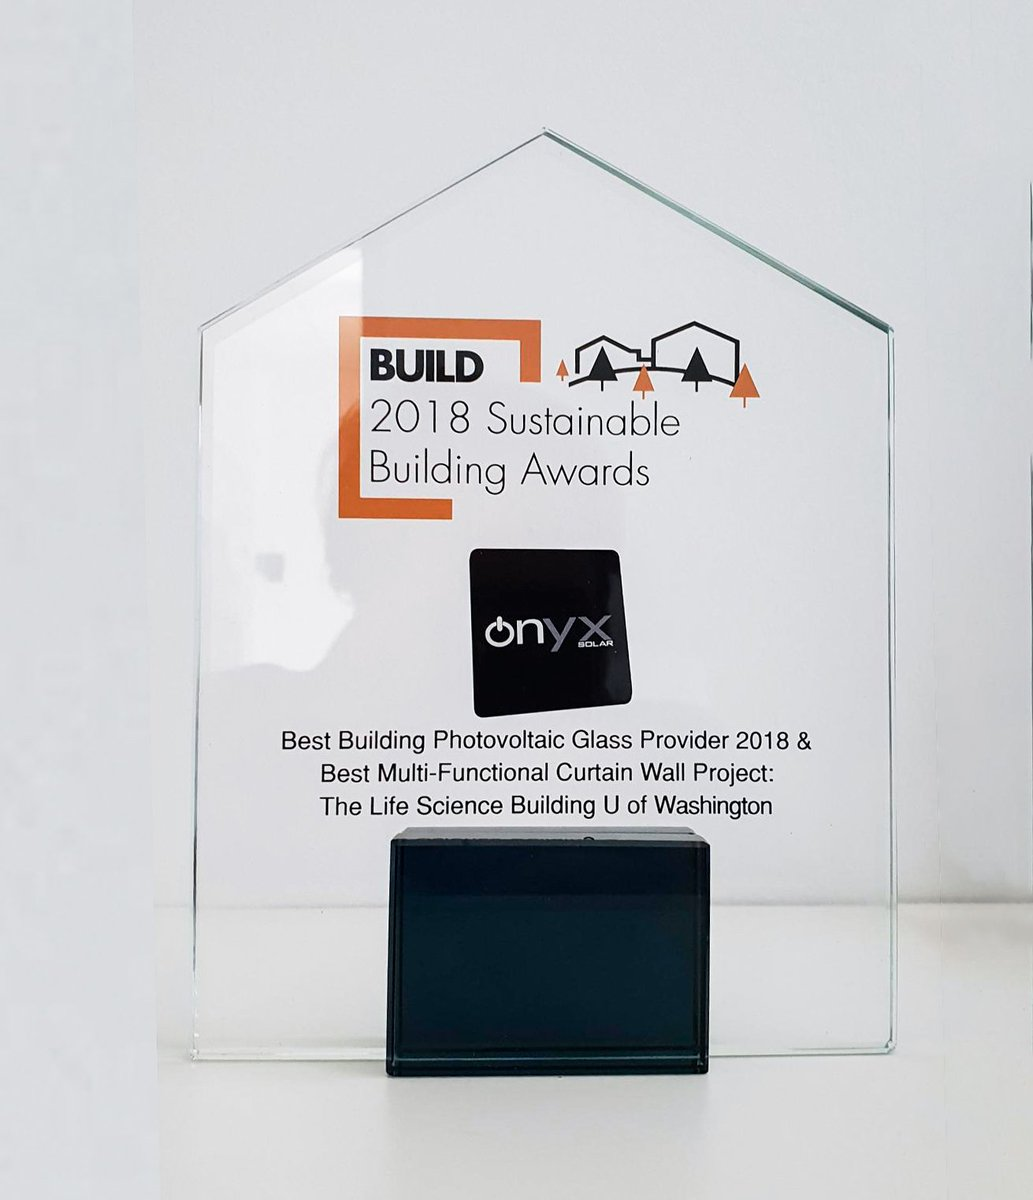 Onyx Solar On Twitter We Have Won Two Other Awards At The